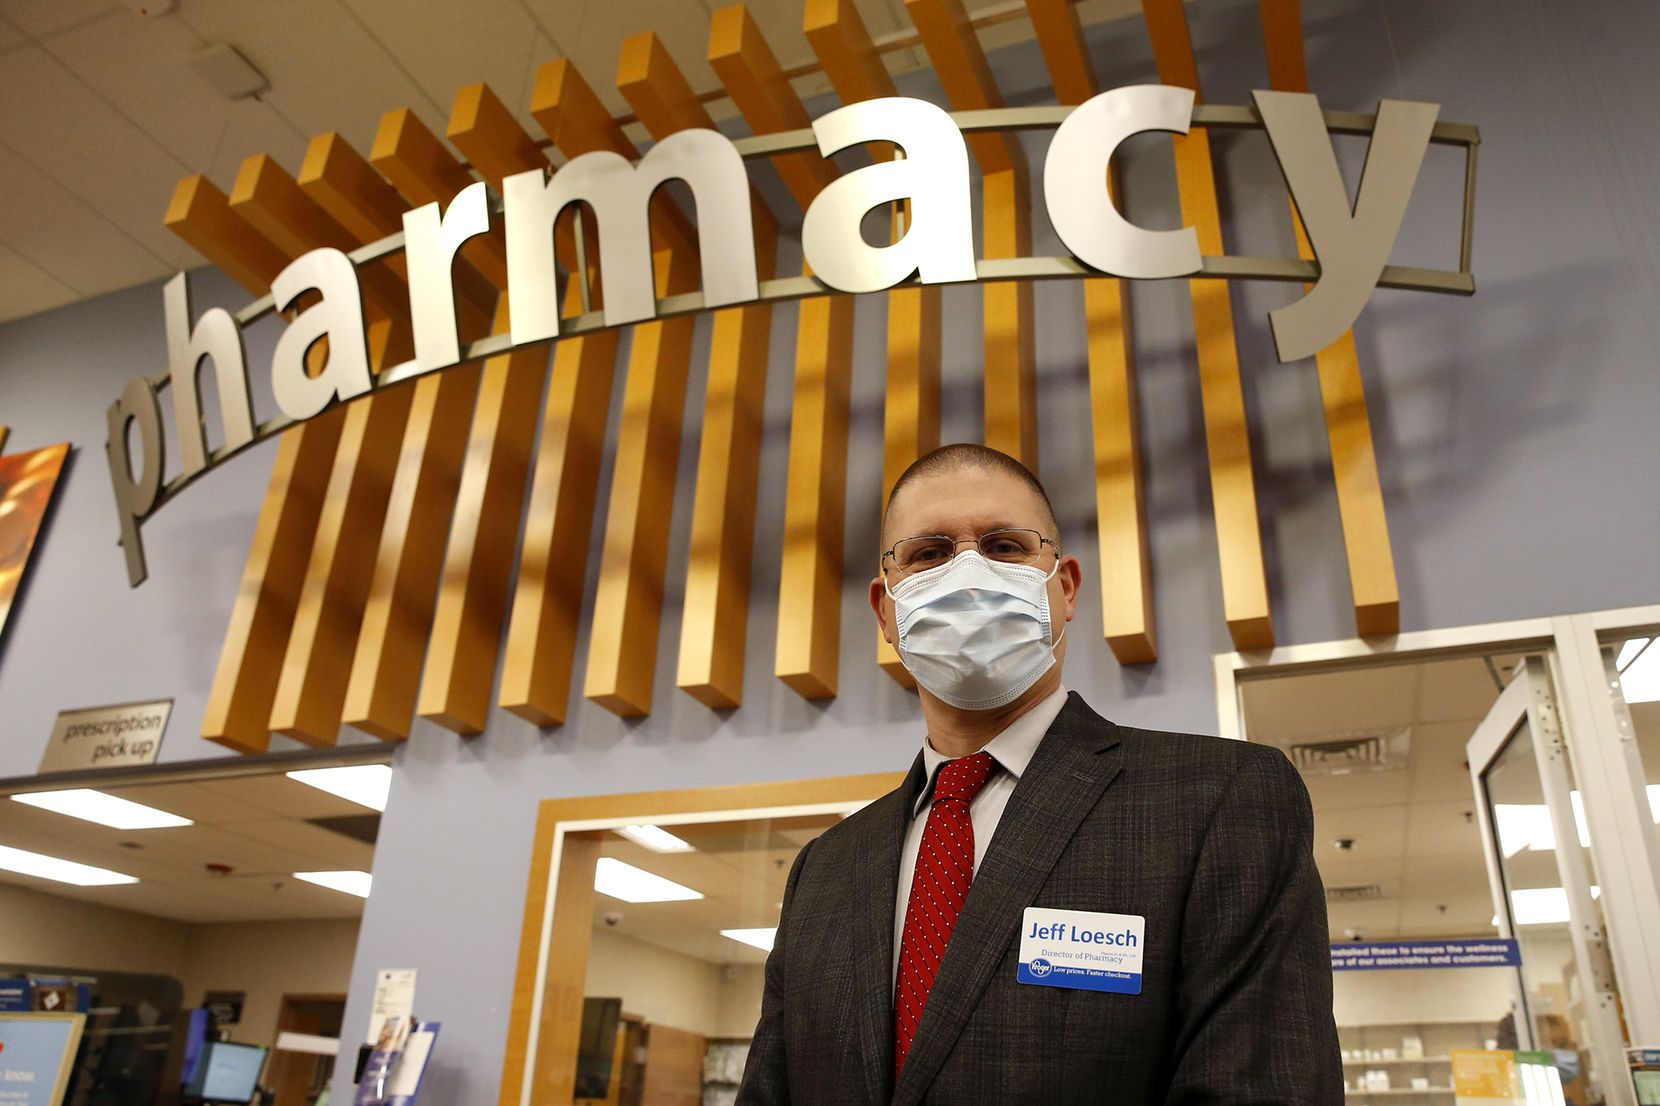 Jeff Loesch, Director of Pharmacy/Dallas Division of Kroger in Irving on Monday, December 7, 2020. (Lola Gomez/The Dallas Morning News)